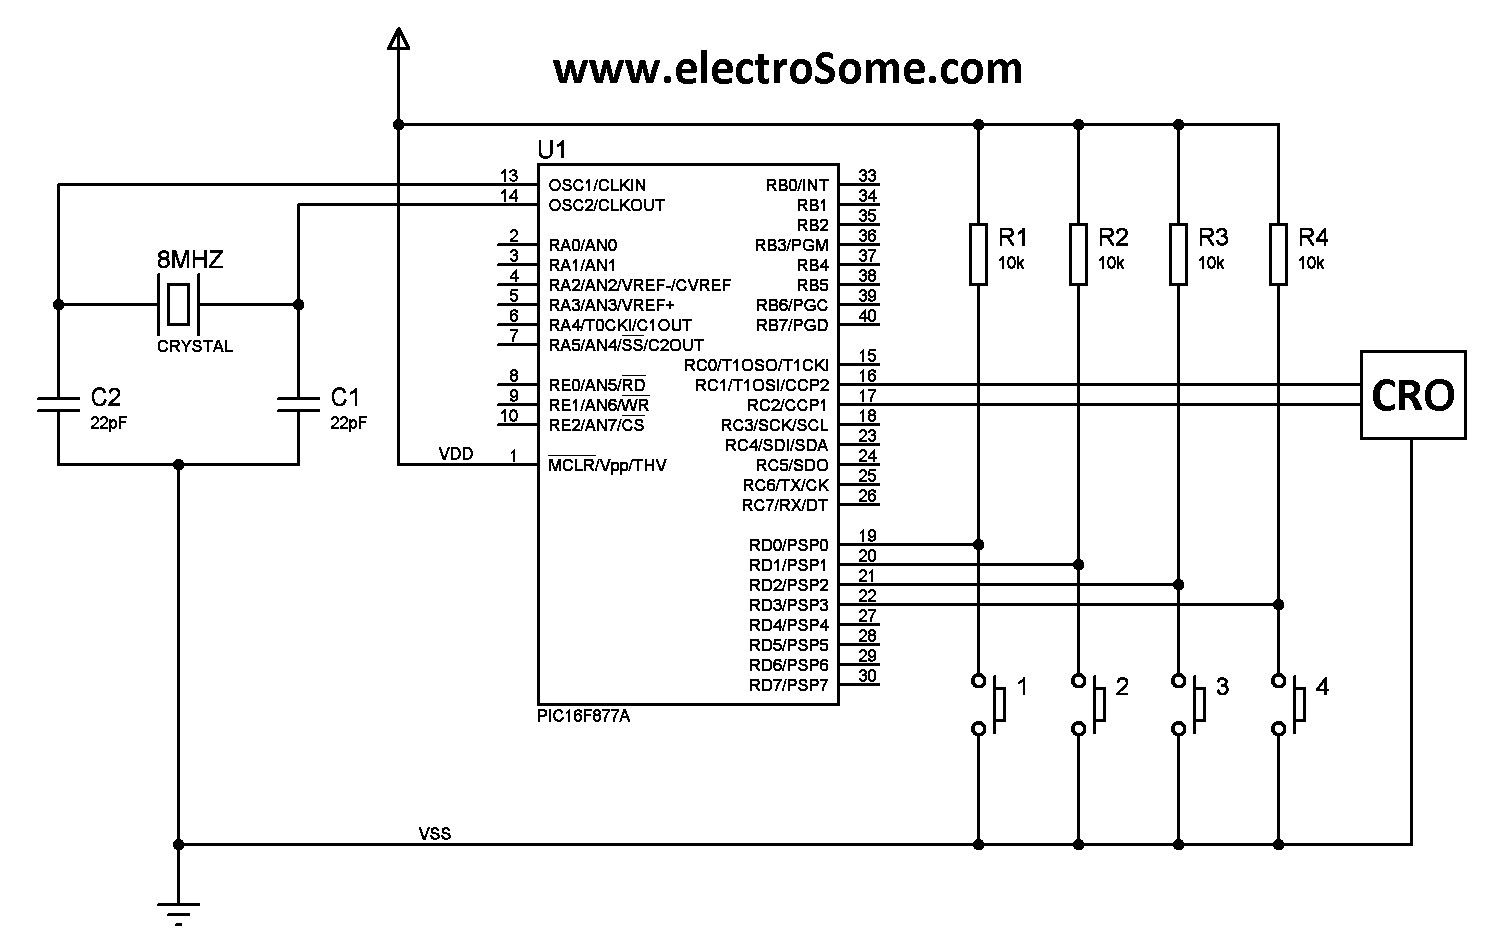 generating pwm pic microcontroller mikroc pro using internal pwm module pic microcontroller circuit diagram